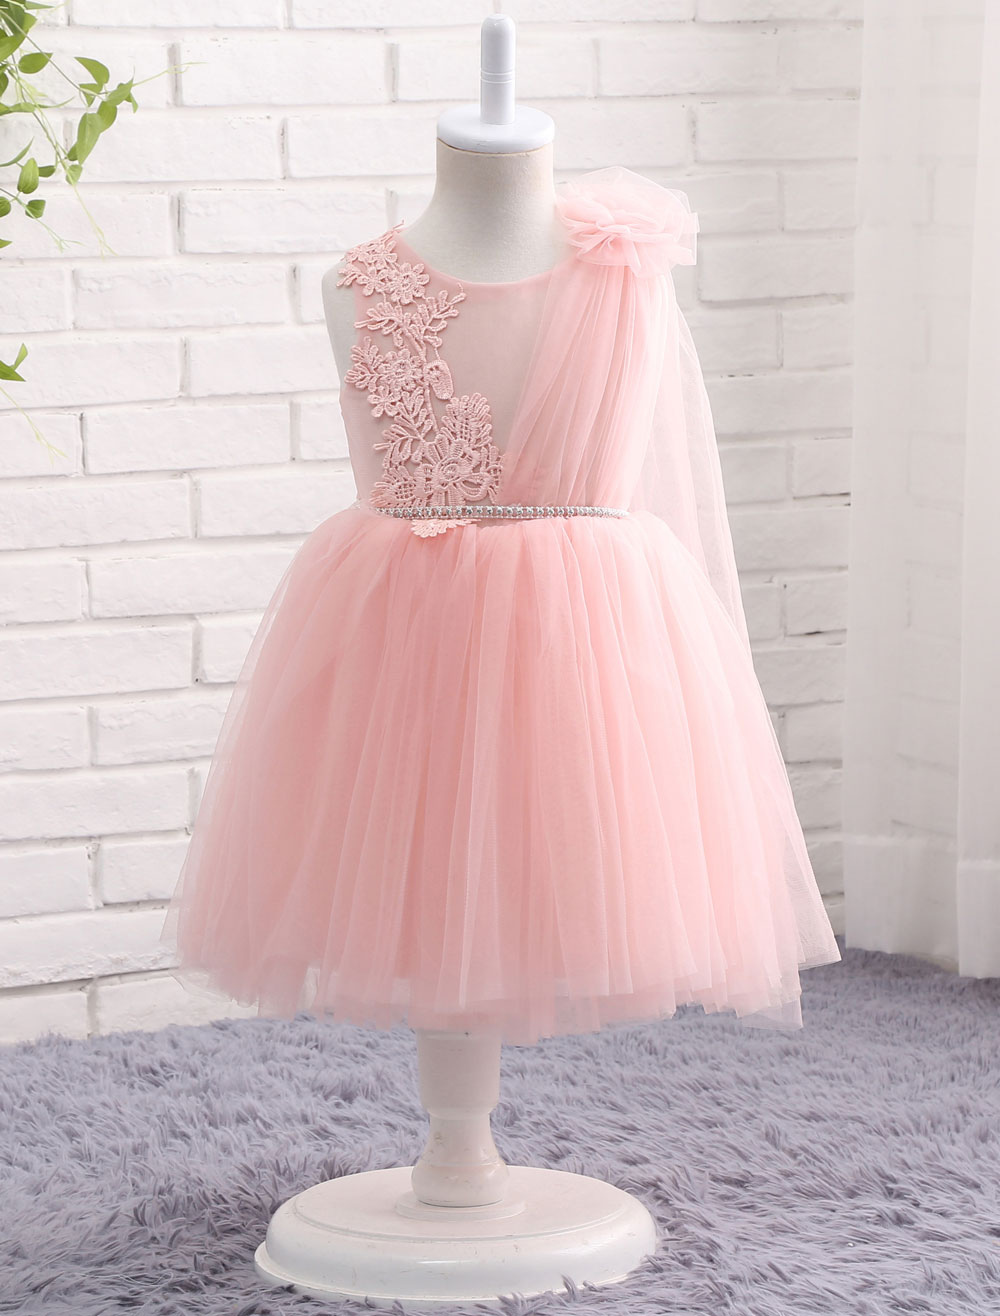 Blush Pink Flower Girl Dress Tulle Lace Applique Princess Knee Length Chain Sash Toddler's Pageant Dress With Side Draping